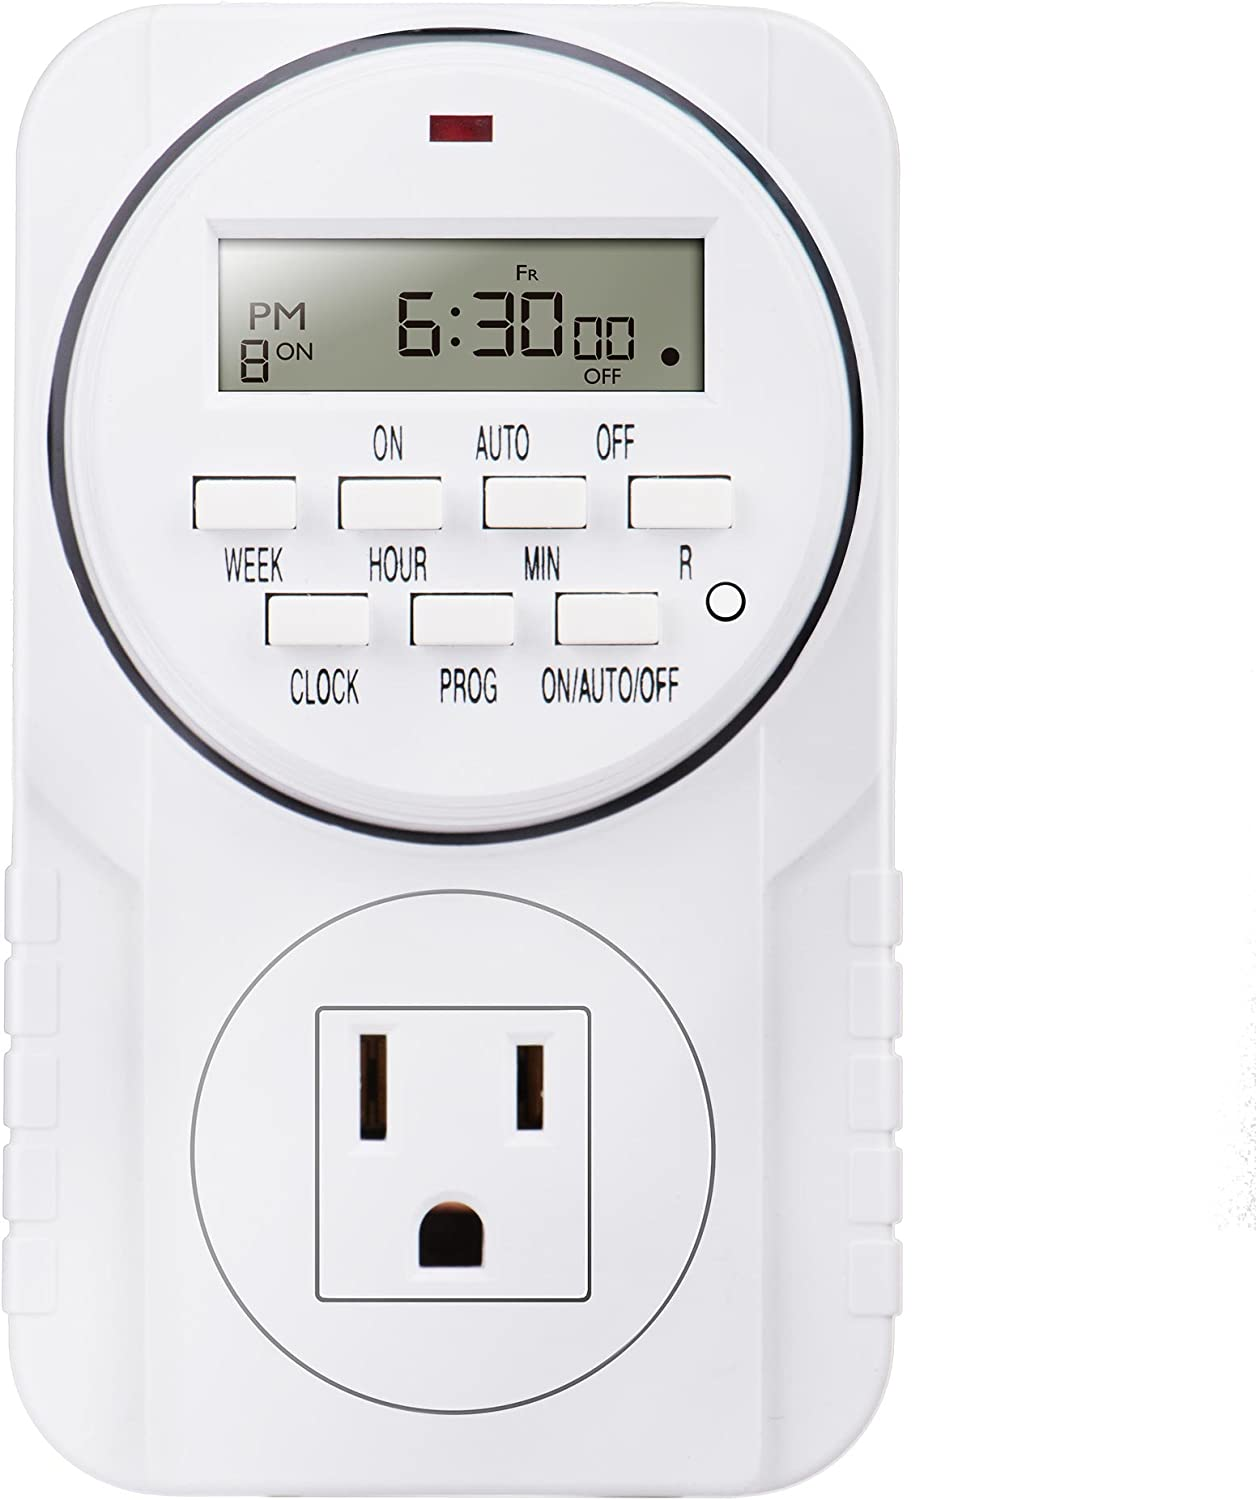 Heavy Duty 7 Days Smart Digital Programmable Outlet Timer with LCD Display for Indoor Lights Lamps, Set Up to 8 On/Off Programs for Plug-In Electrical Outlets